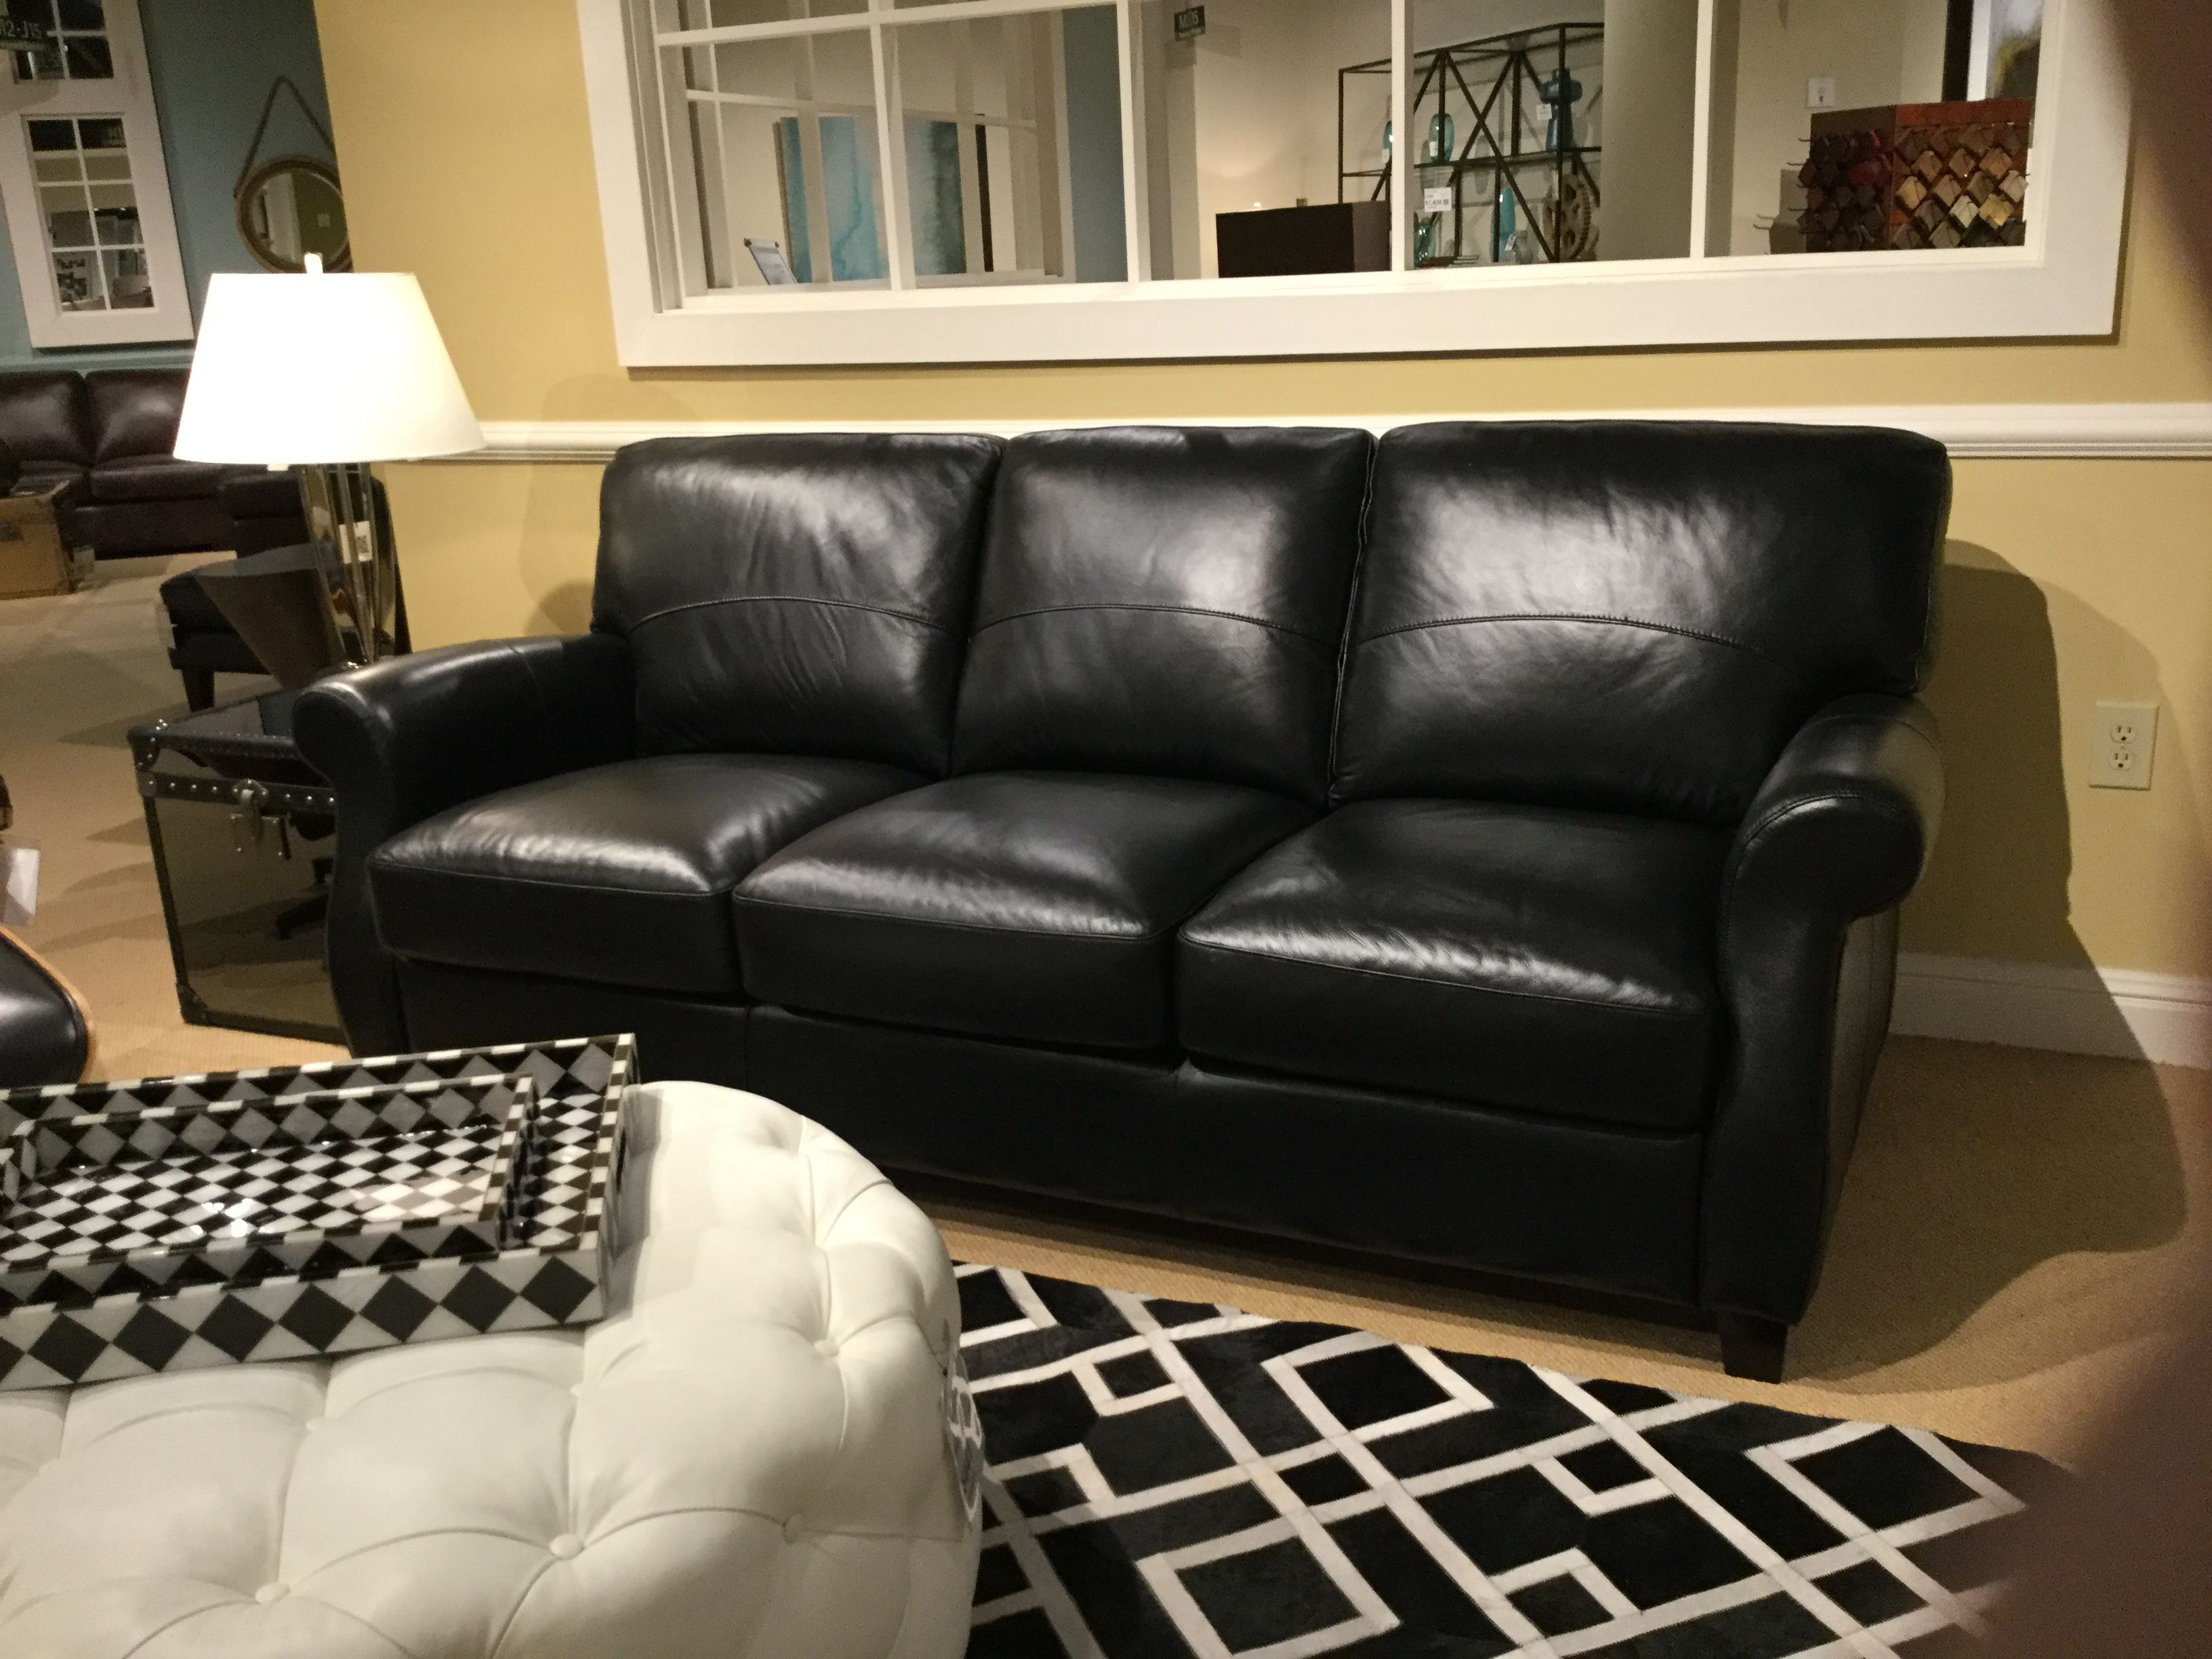 The spruce / danielle holstein the best way to clean leather furniture is to do it gently. Pin by Pamela D on Leather furniture   Leather furniture ...